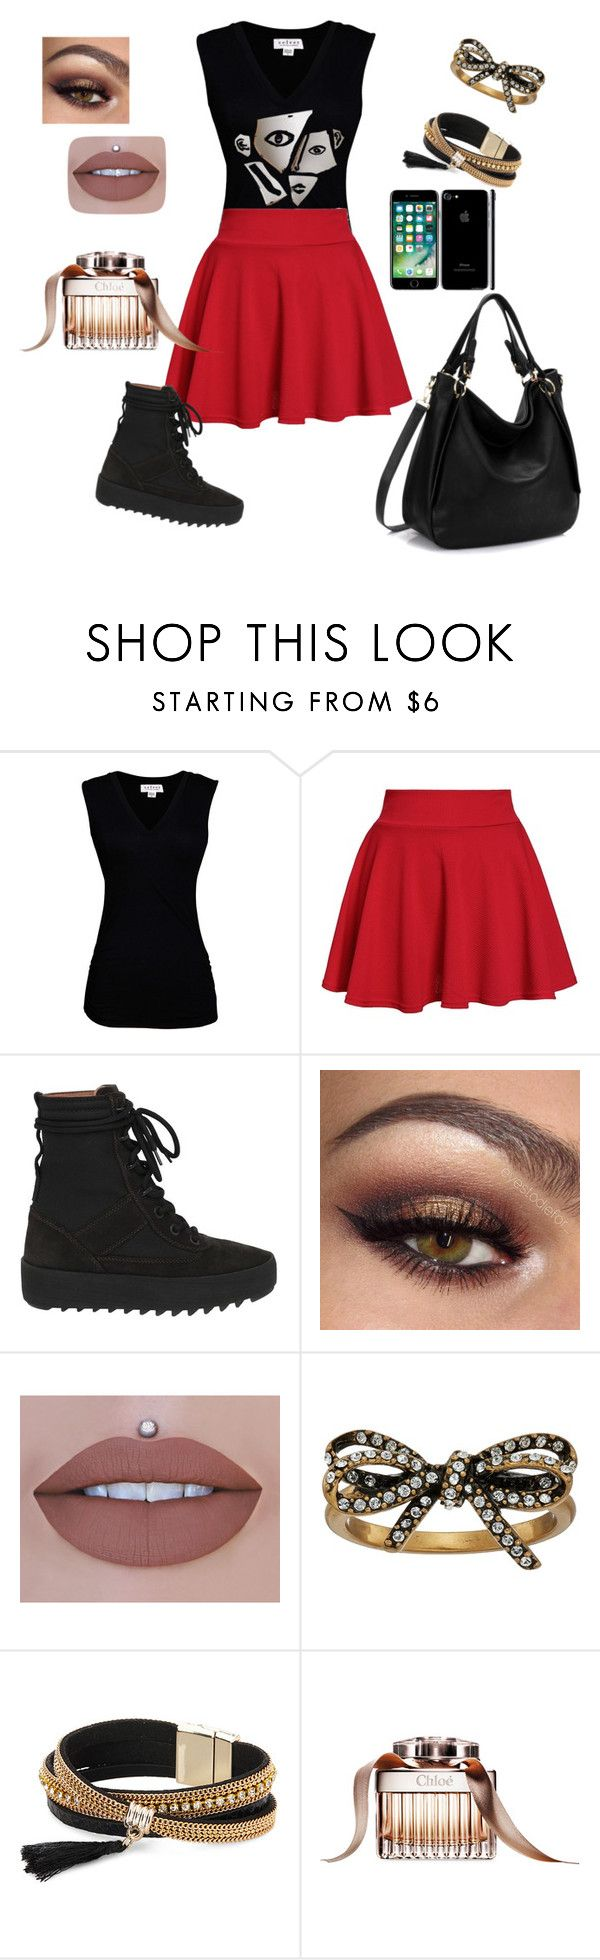 """""""#Walker128"""" by magconfocuss ❤ liked on Polyvore featuring Velvet by Graham & Spencer, adidas, Marc Jacobs and Simons"""